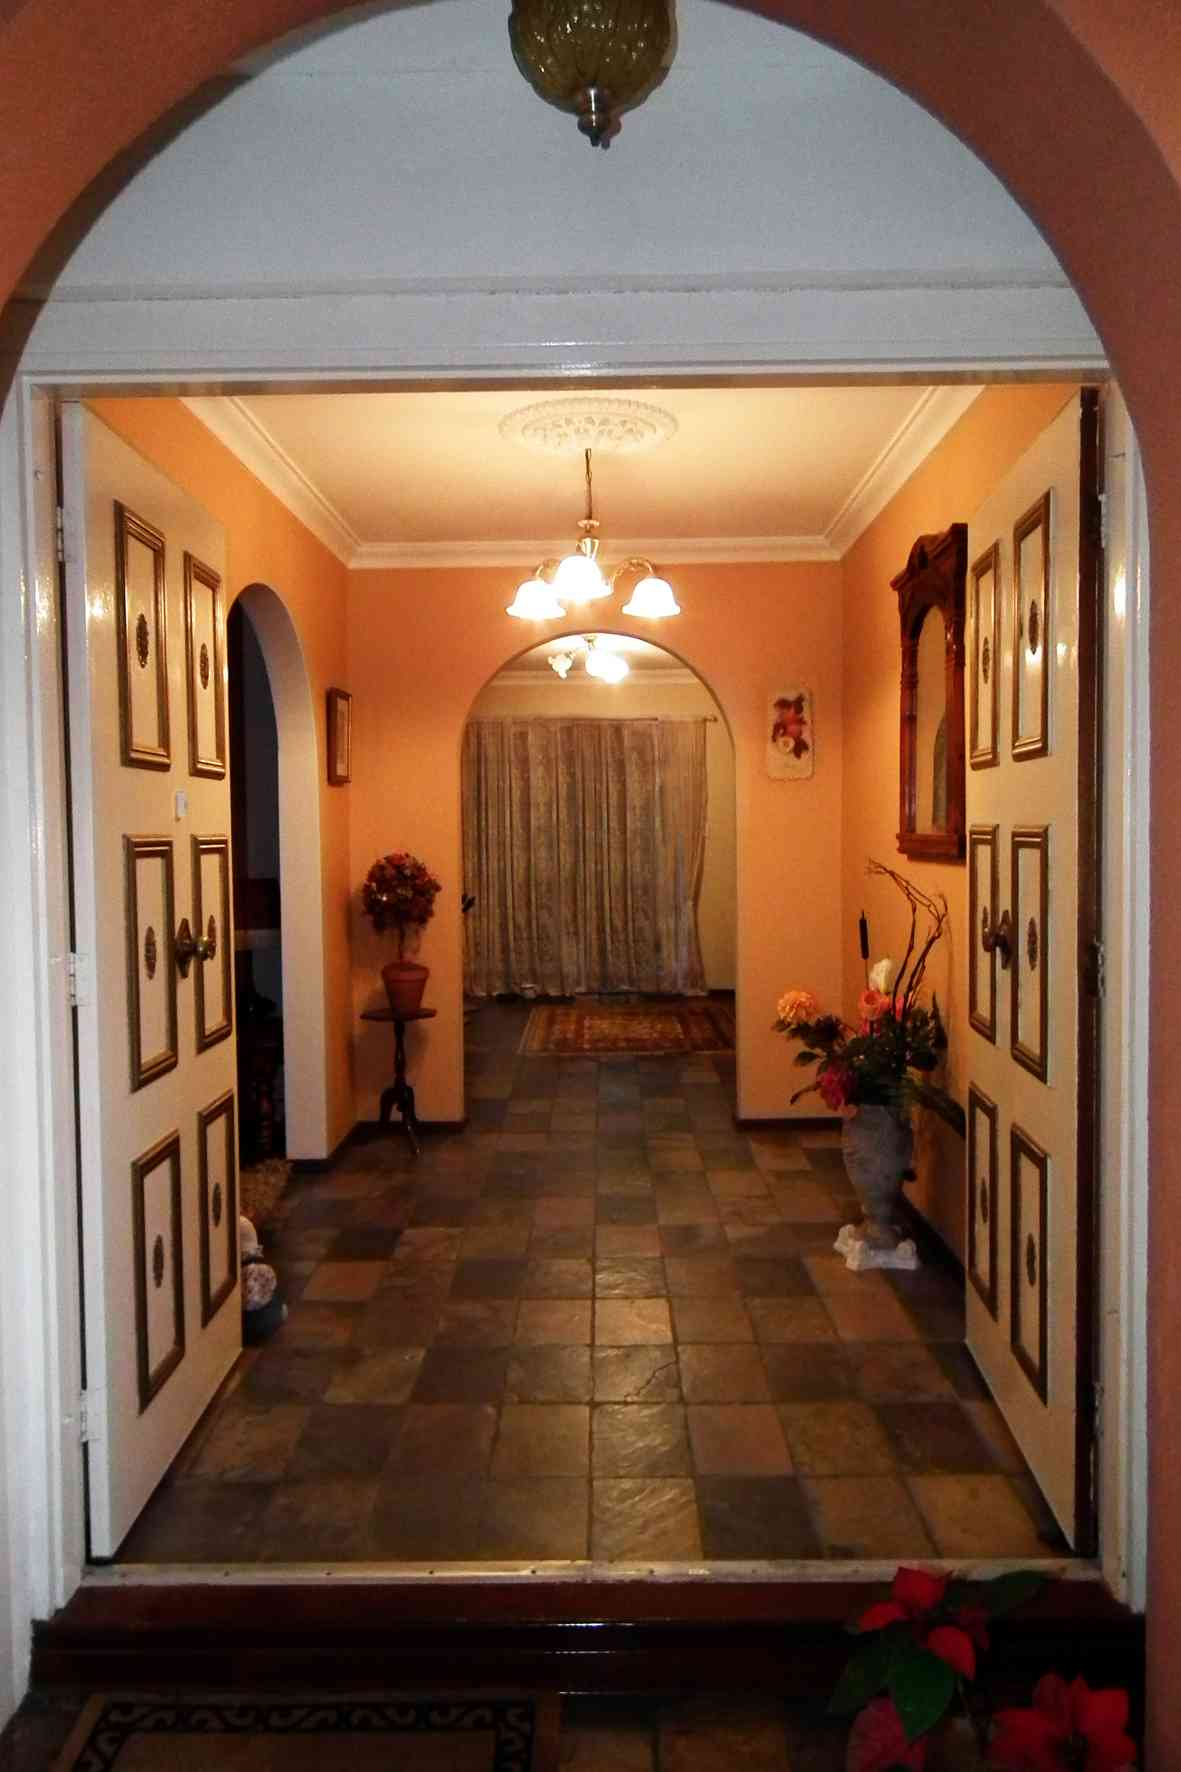 THE SPANISH LODGE (Priv. Rooms with use of Kitchen, Laundry, Pool etc)